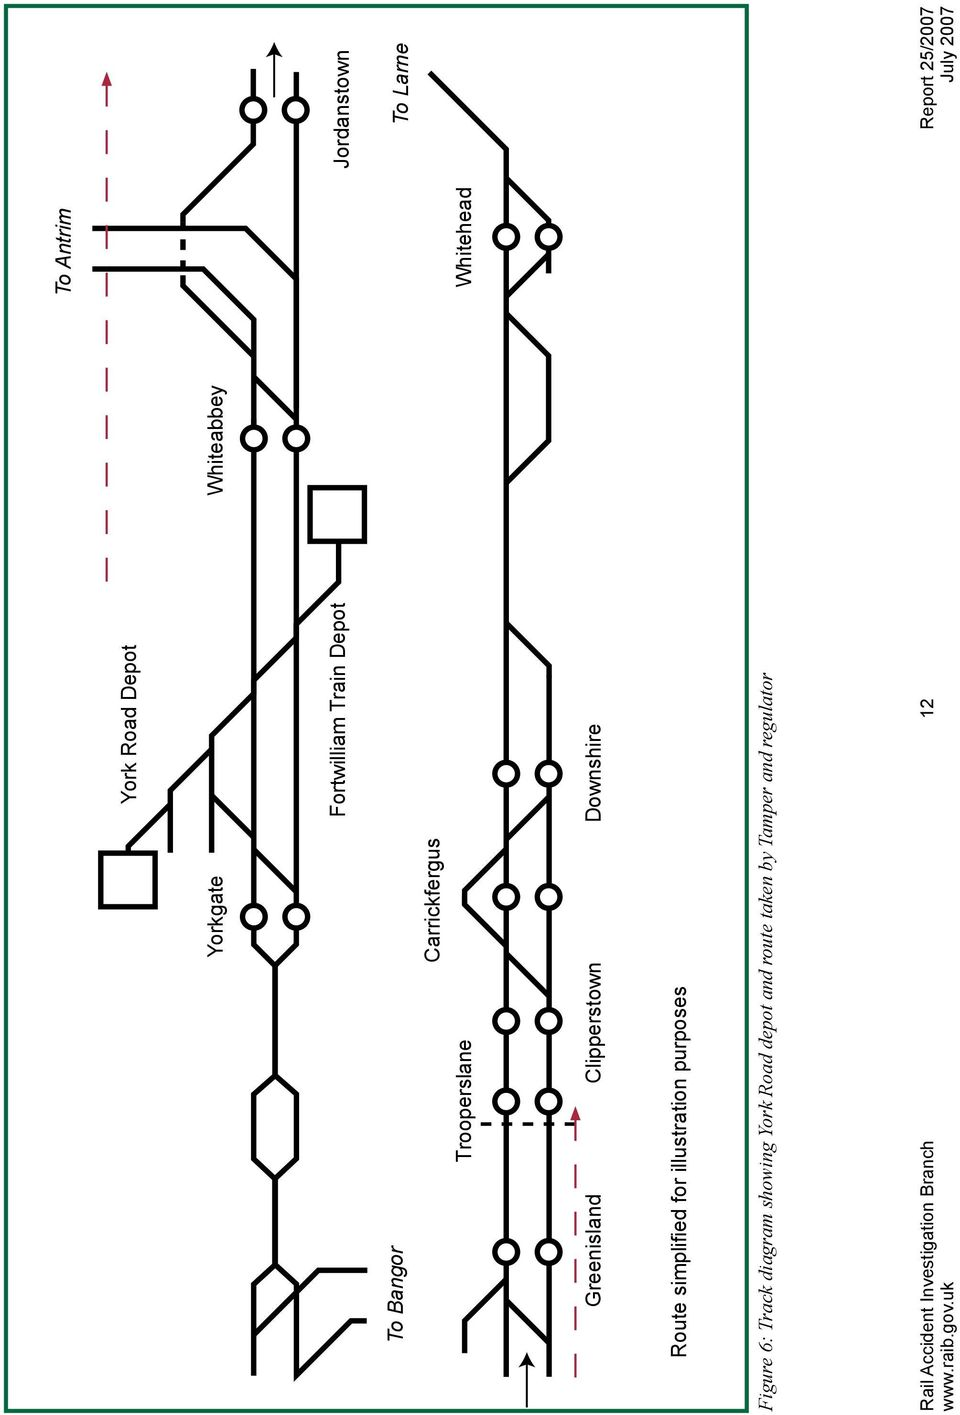 Clipperstown Downshire Route simplified for illustration purposes Figure 6: